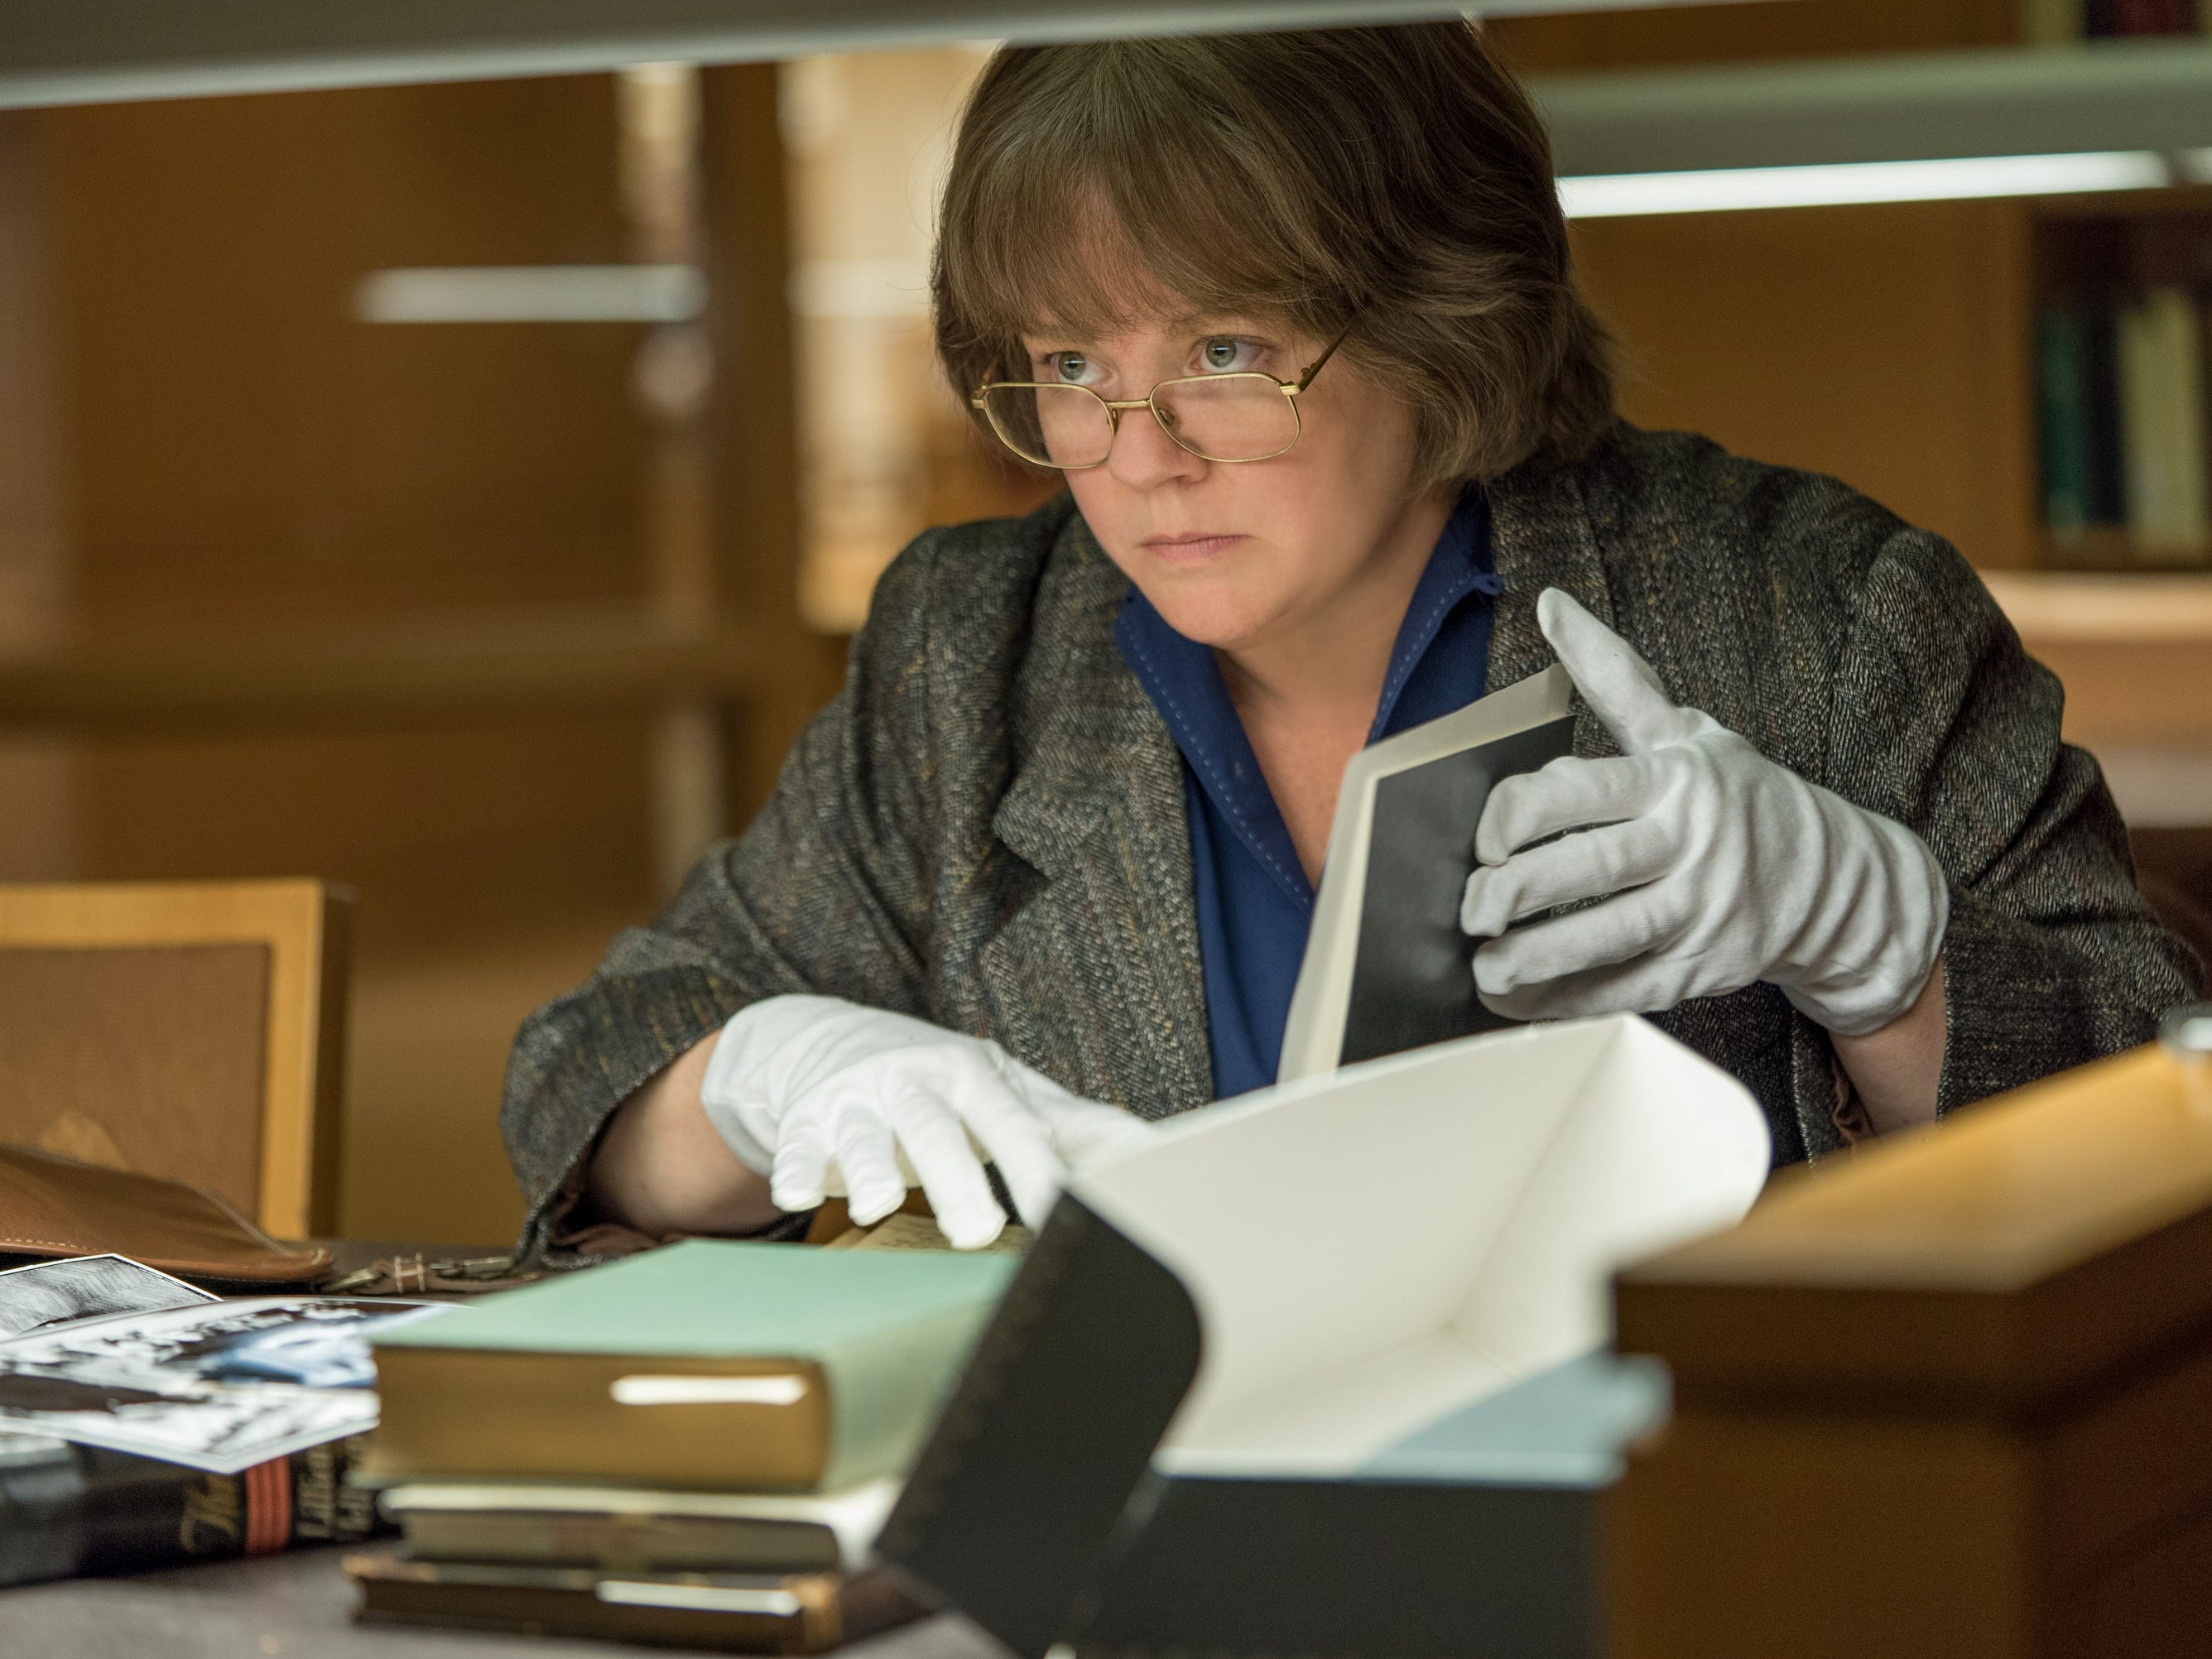 Melissa McCarthy in the film CAN YOU EVER FORGIVE ME? Photo by Mary Cybulski. © 2017 Twentieth Century Fox Film Corporation All Rights Reserved [Via MerlinFTP Drop]